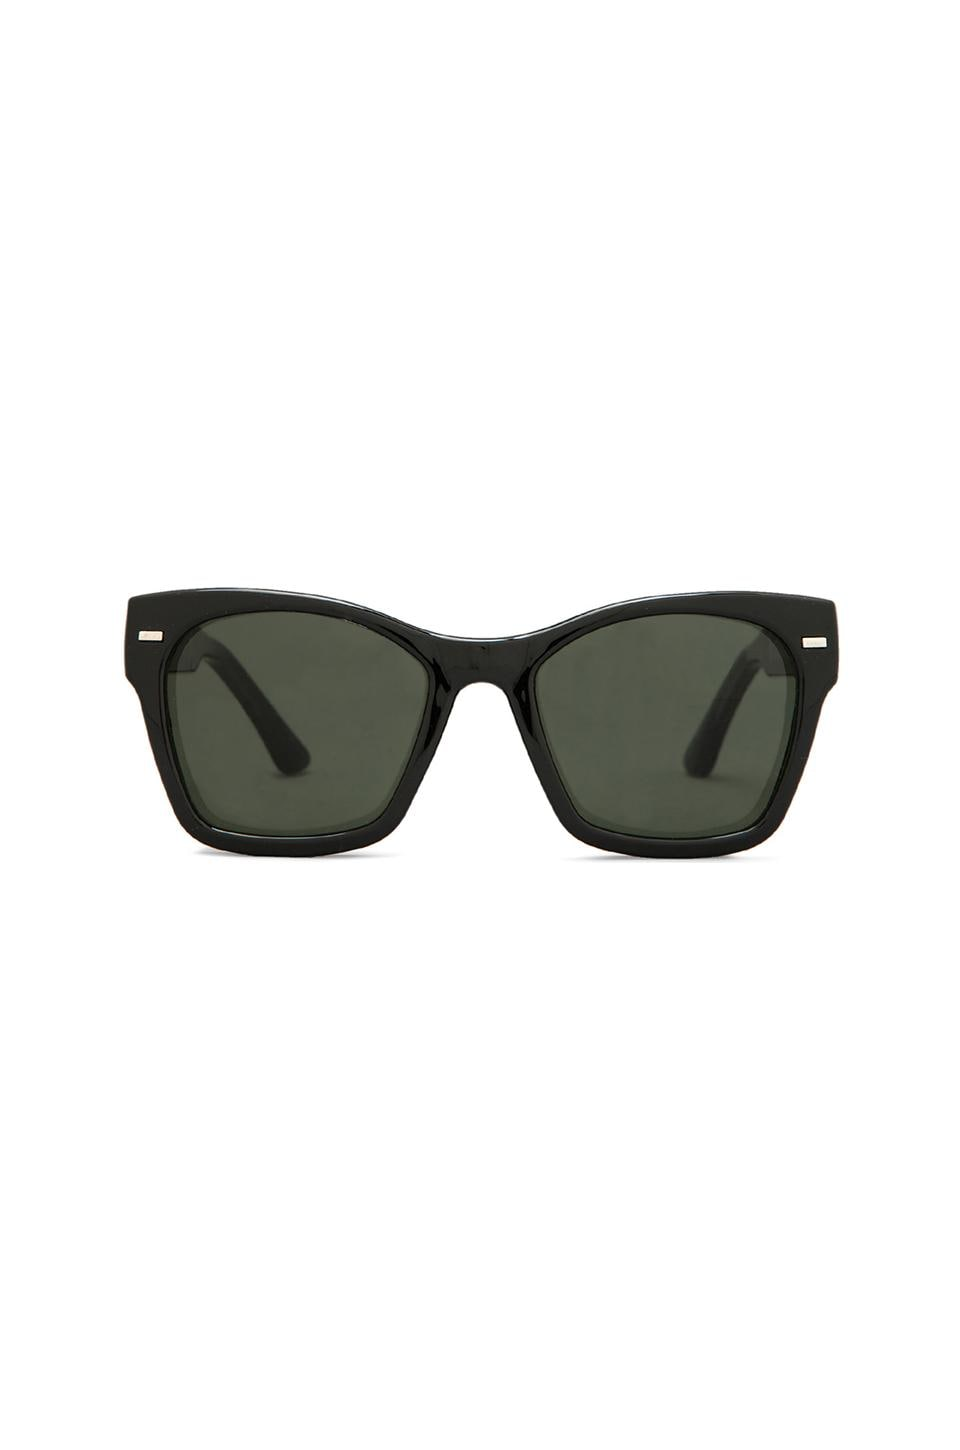 Spitfire Coco in Black w/ Dark Green